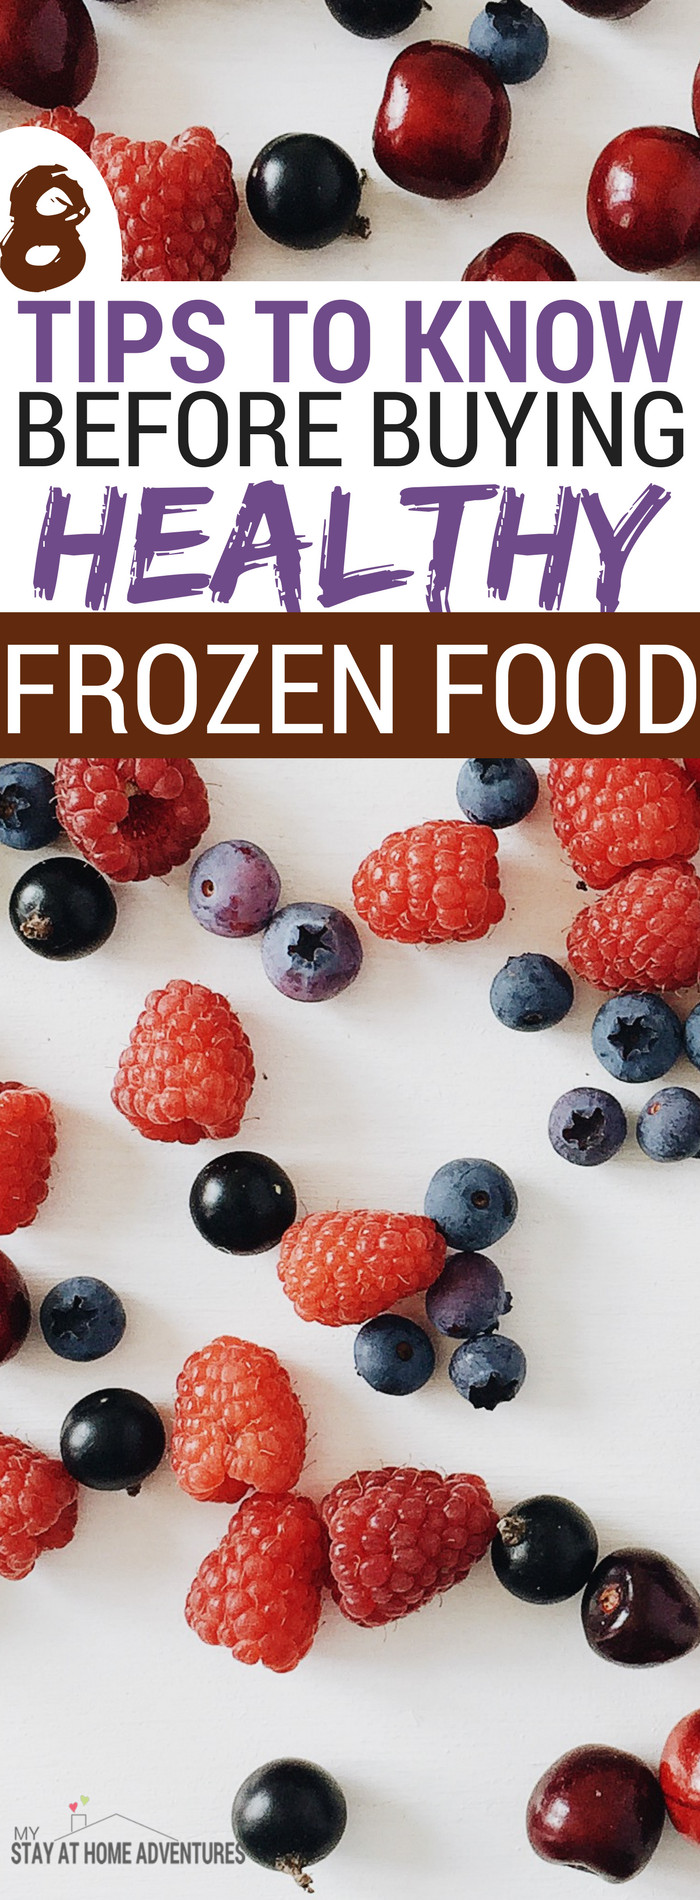 Healthy Snacks To Keep At Home  8 Tips For Buying Healthy Frozen Food You Might Not Know